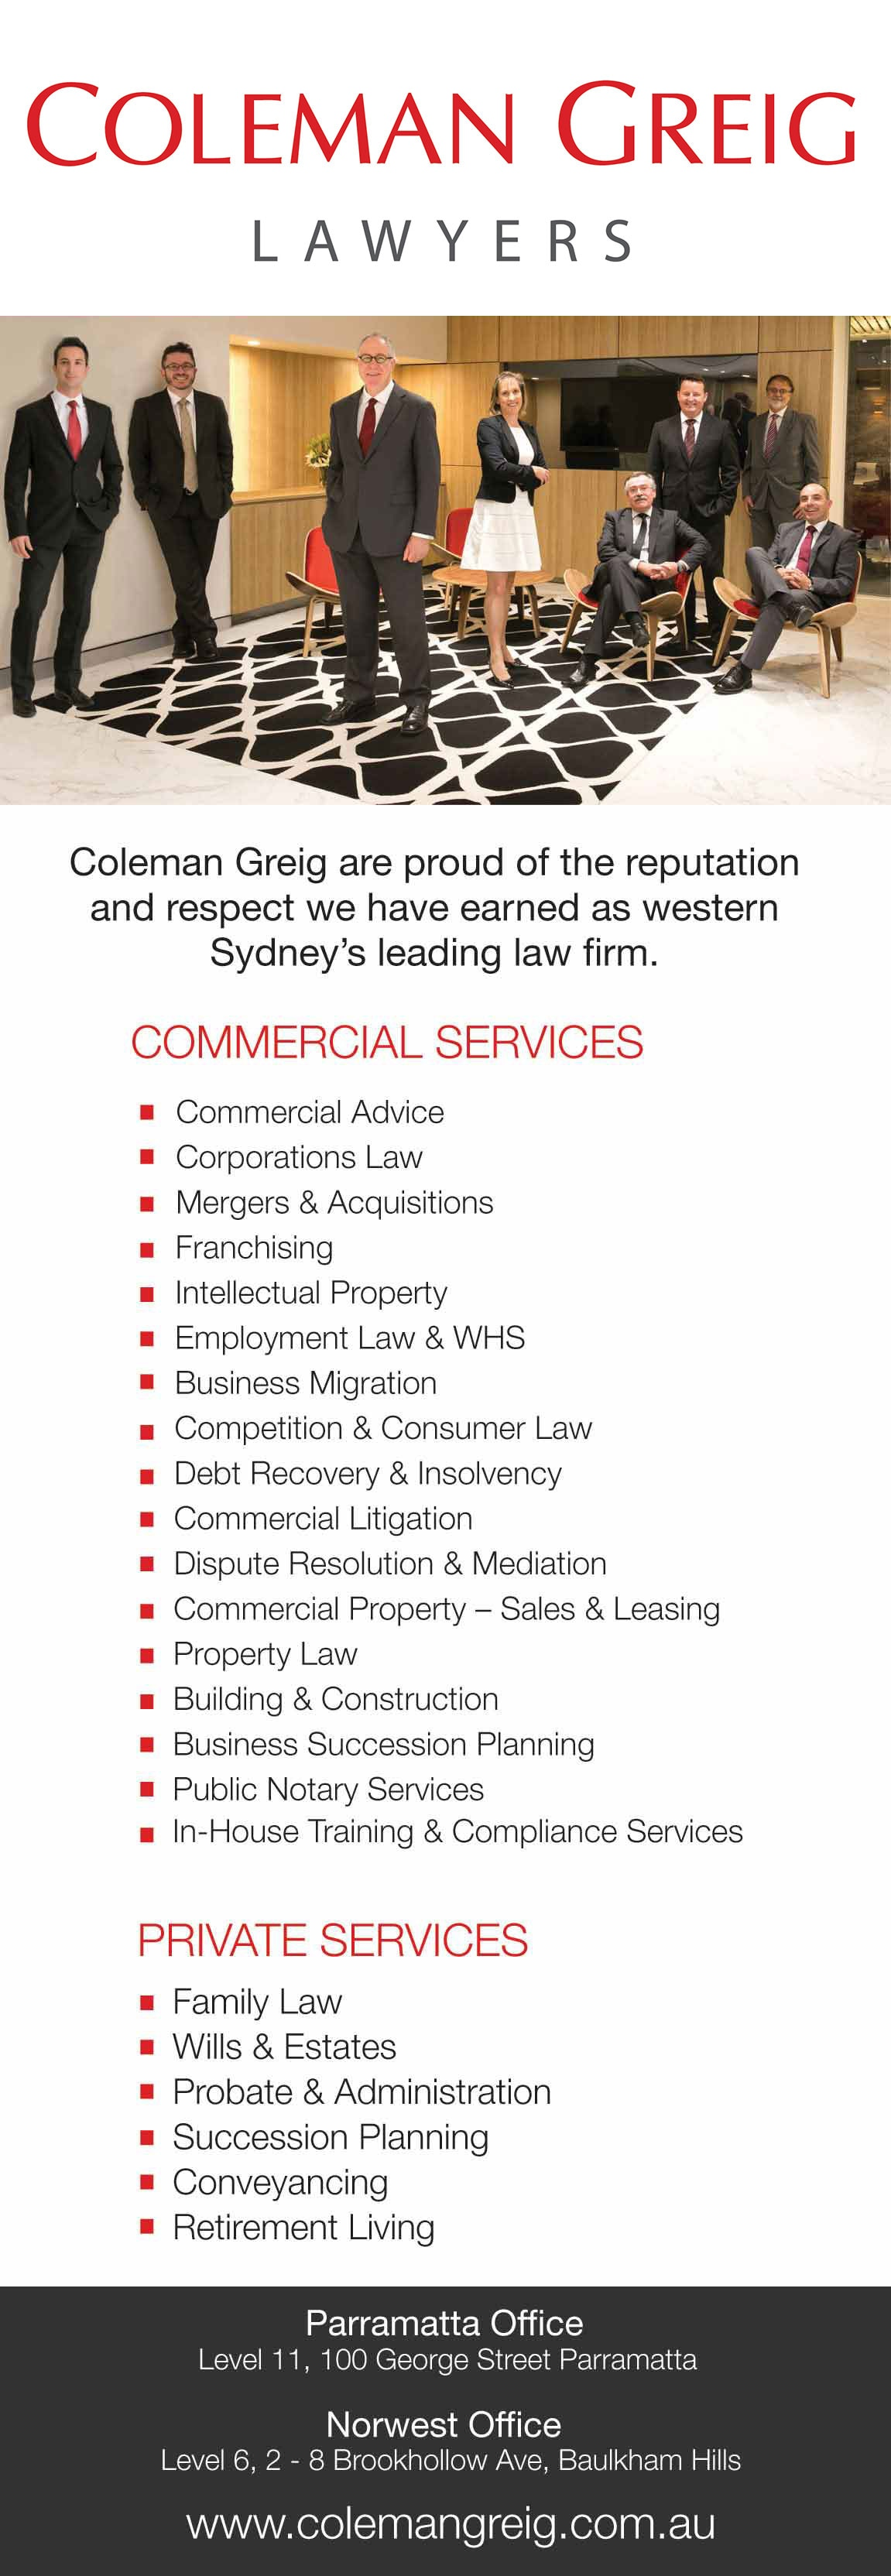 Coleman Greig Lawyers - Lawyers & Solicitors - Level 11 100